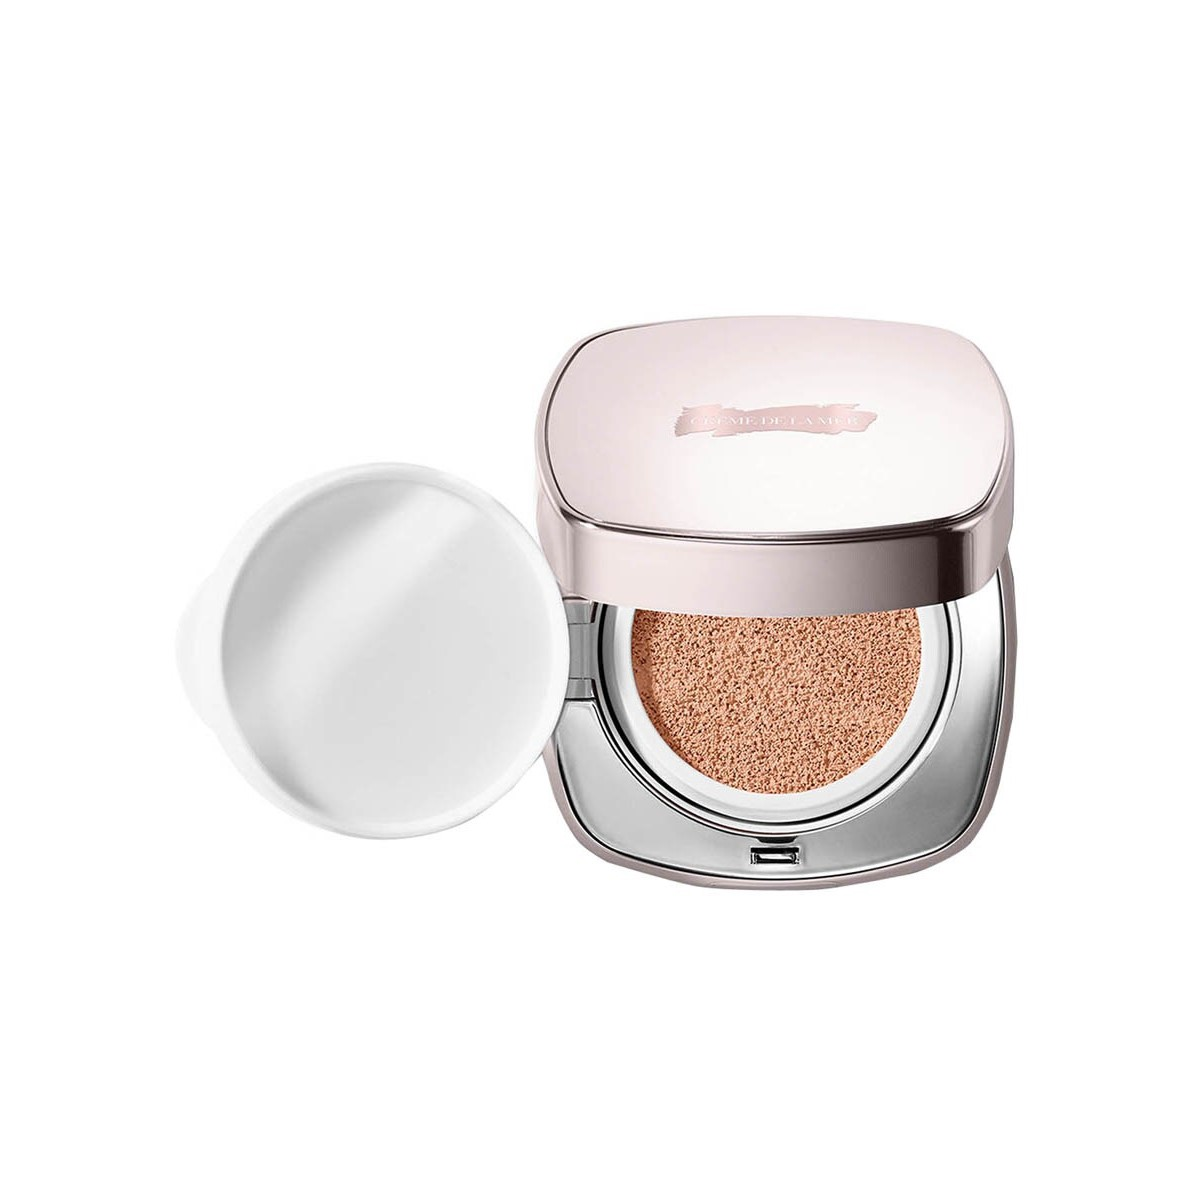 Base de maquillaje Luminous Lifting Cushion Foundation SPF 20 La Mer